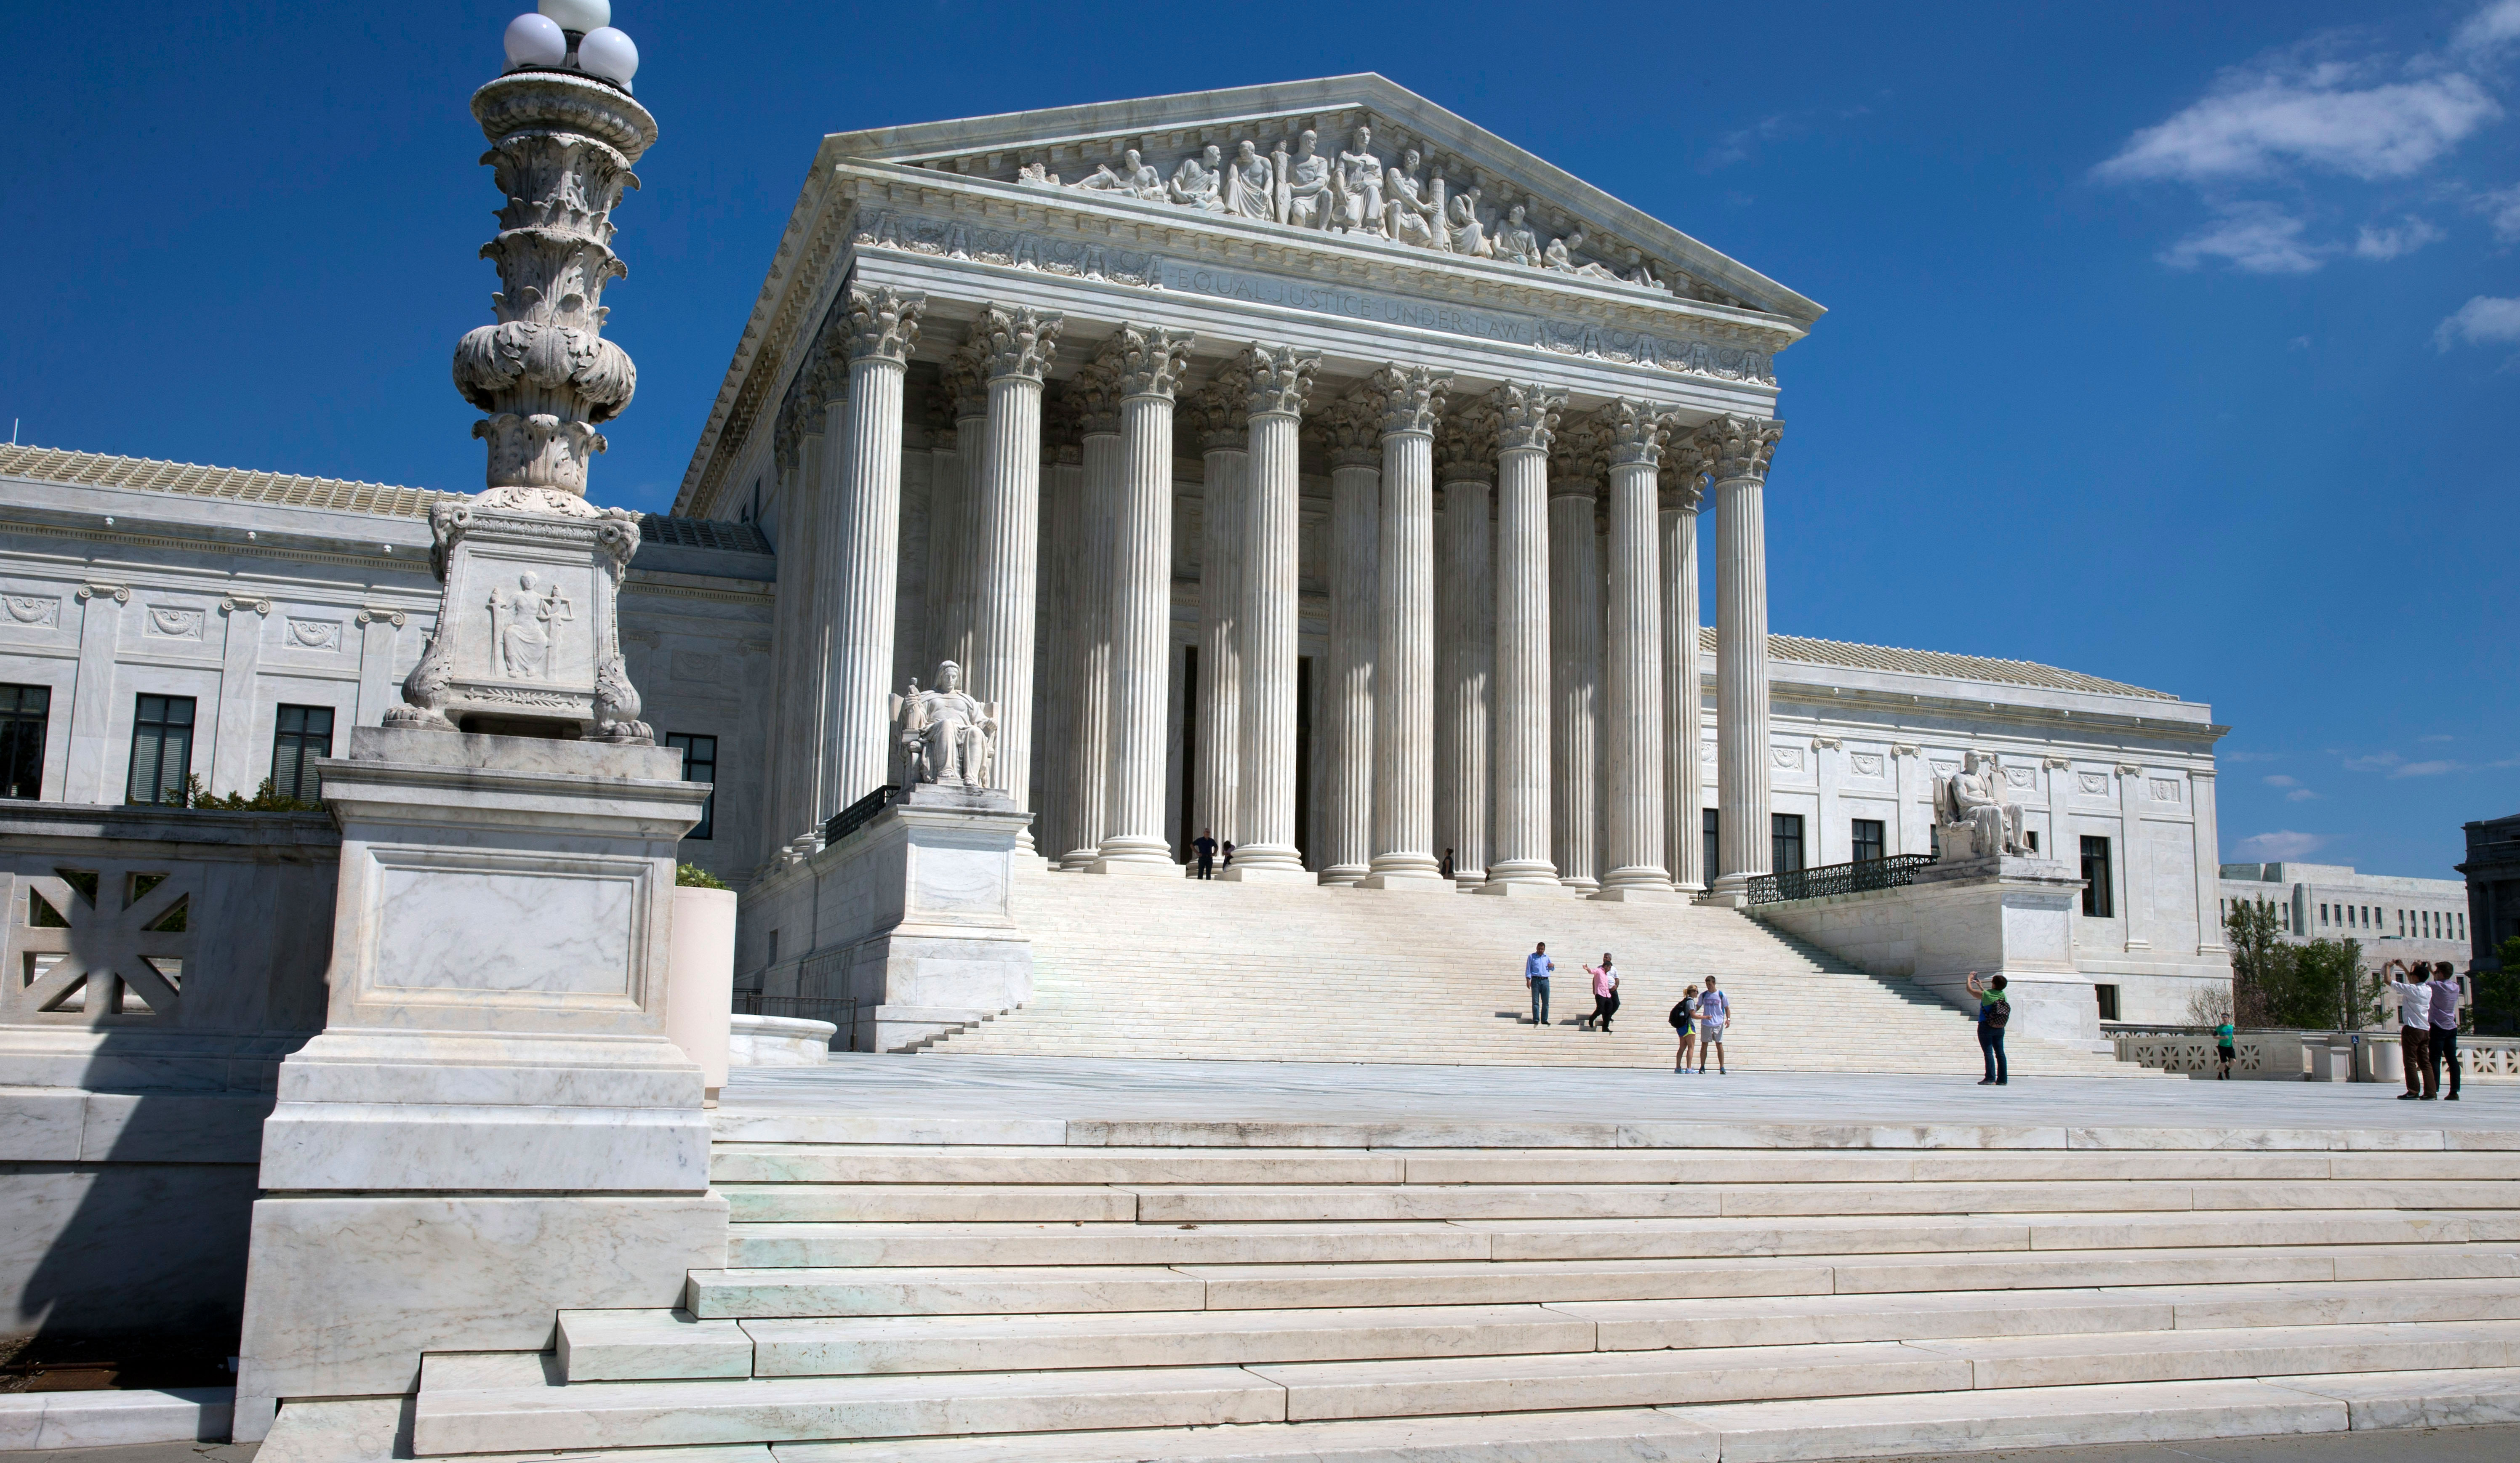 People walk on the steps of the U.S. Supreme Court in Washington, D.C.